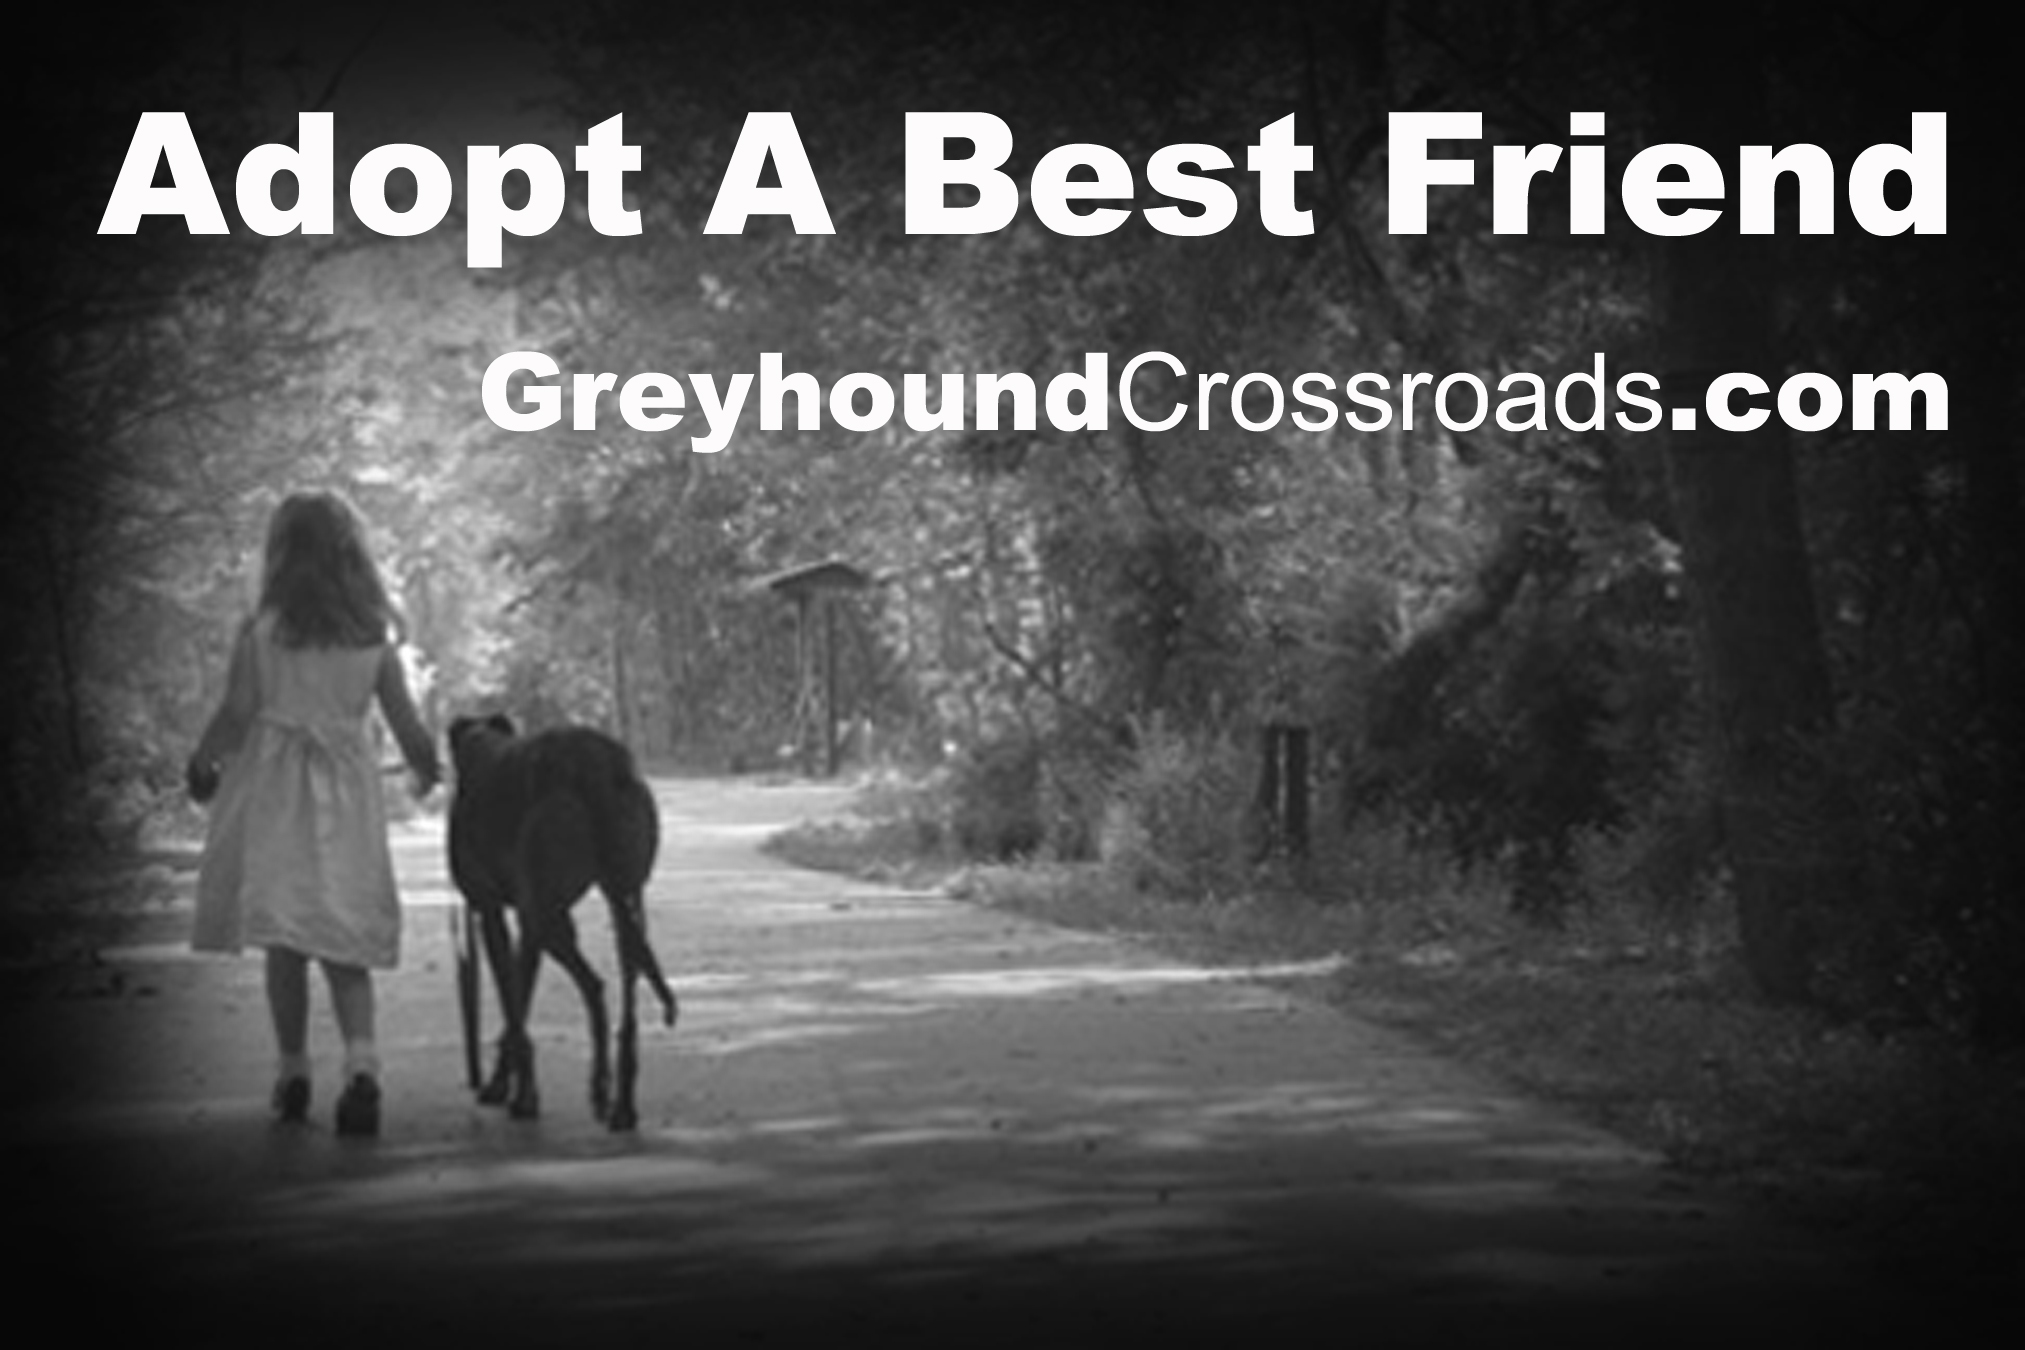 Adopt A Best Friend Greyhound Crossroads